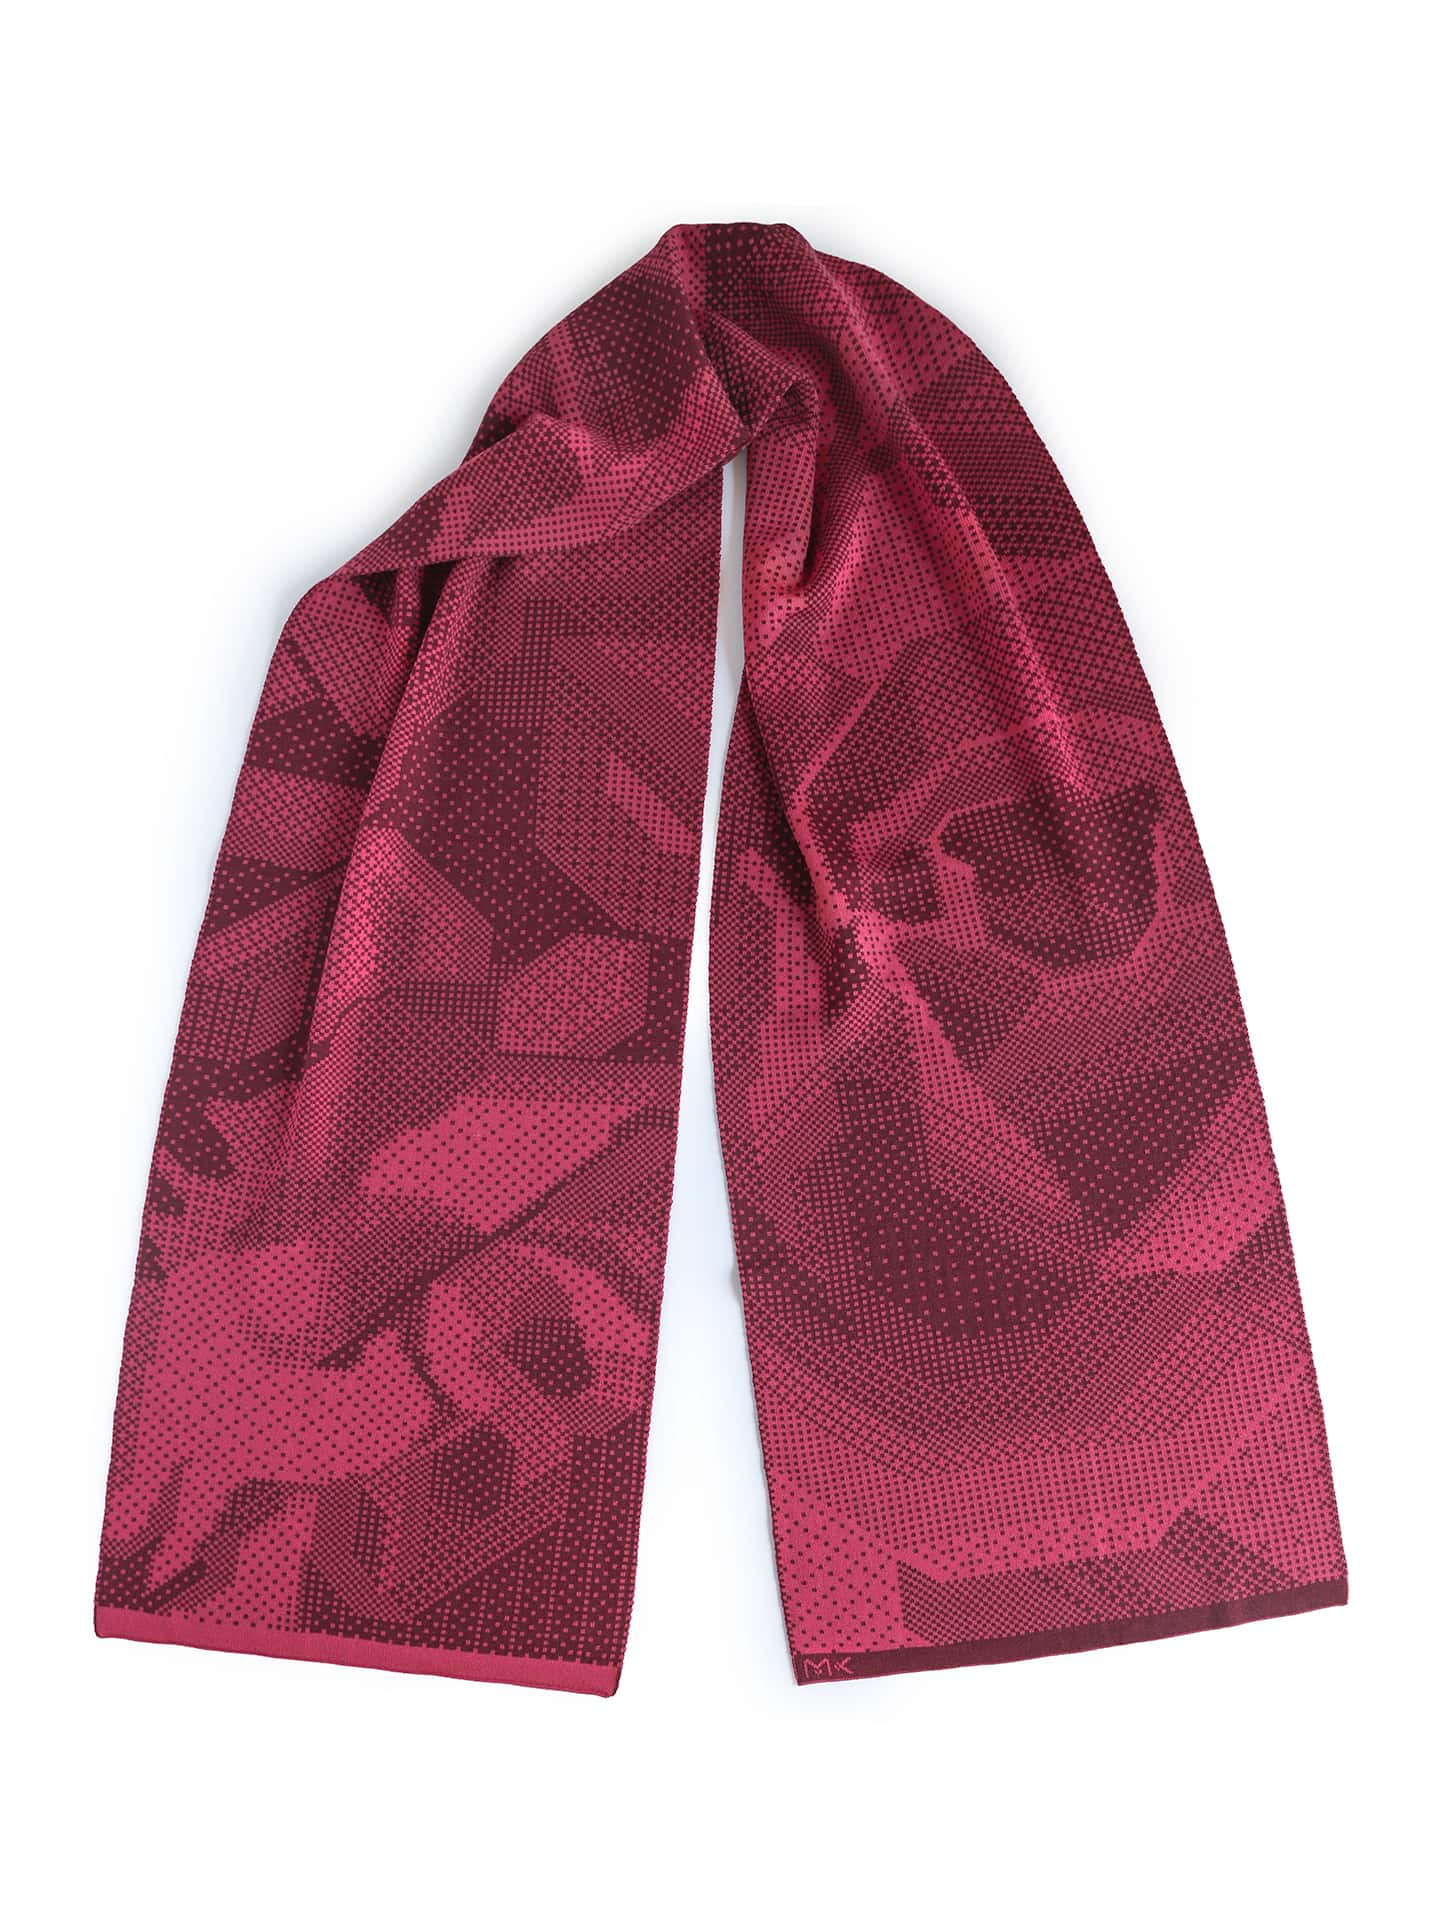 Pixelated Roses Scarf - Rose & Aubergine